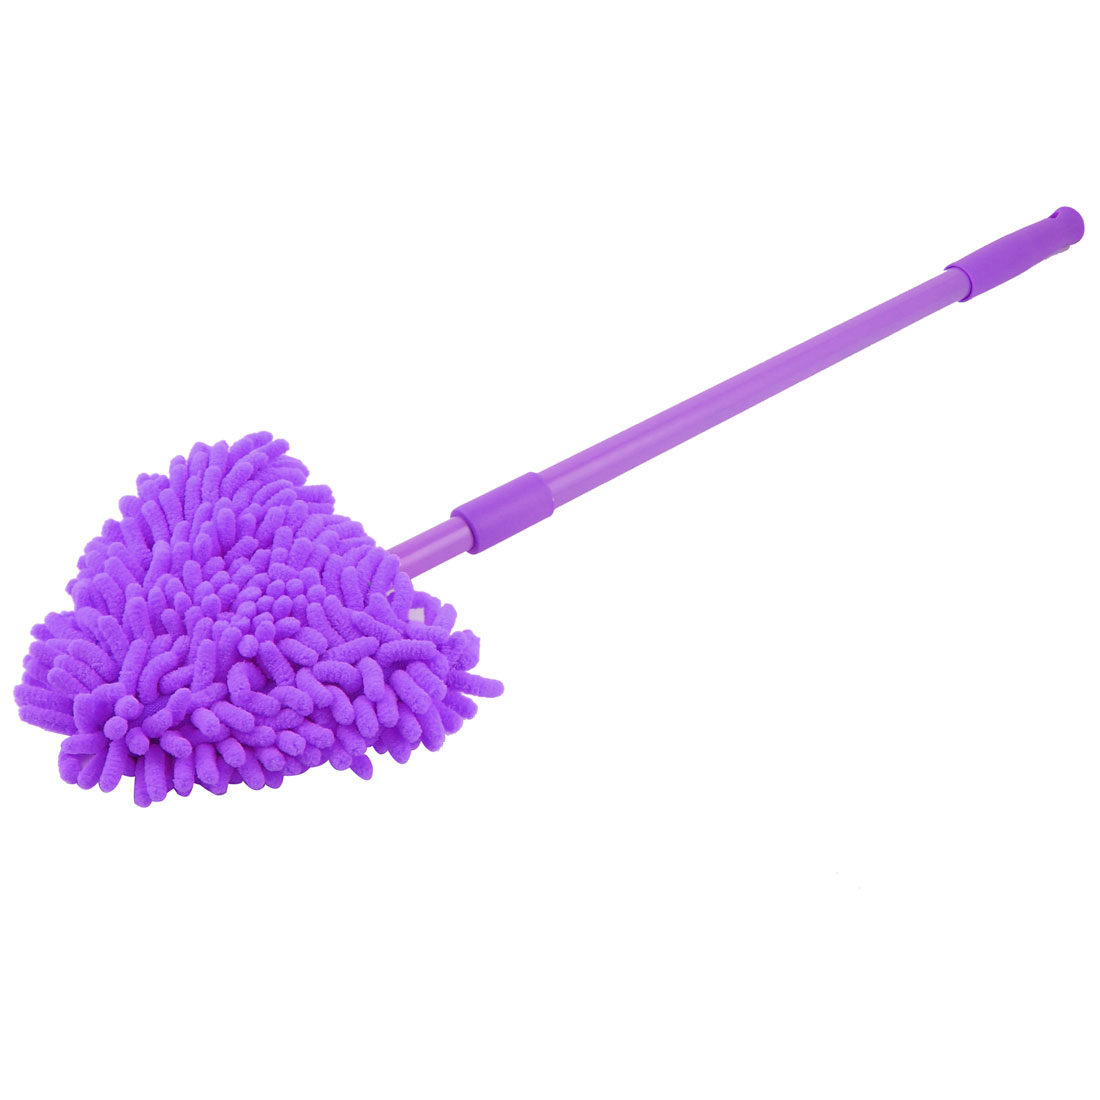 Plastic Handle Cotton Blends Top Home Stretchable Floor Cleaning Brush Purple